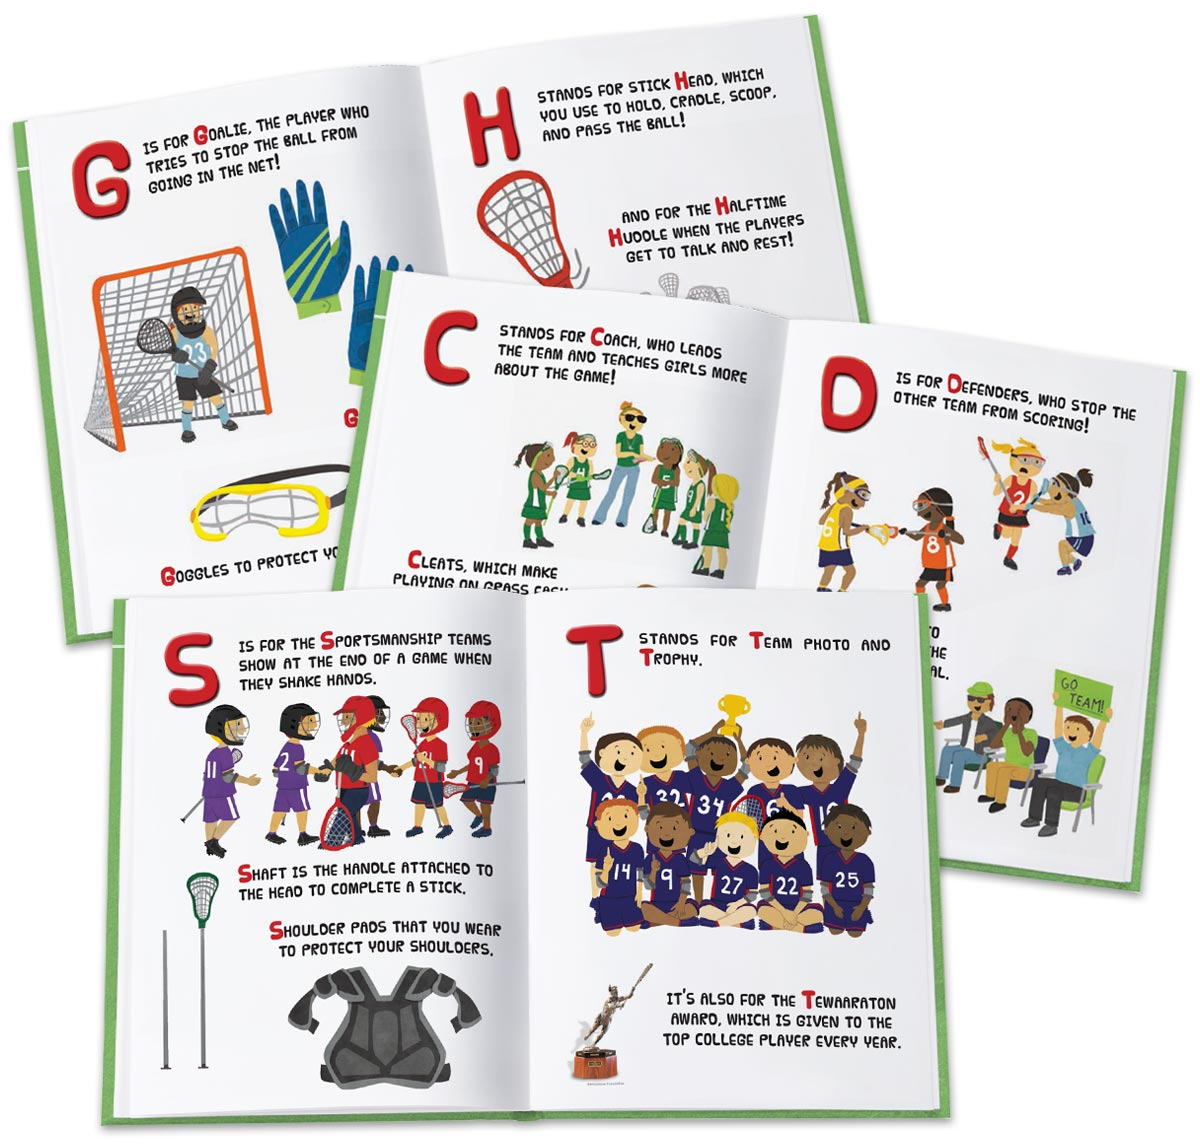 ABCs-of-Girls-Lacrosse-2